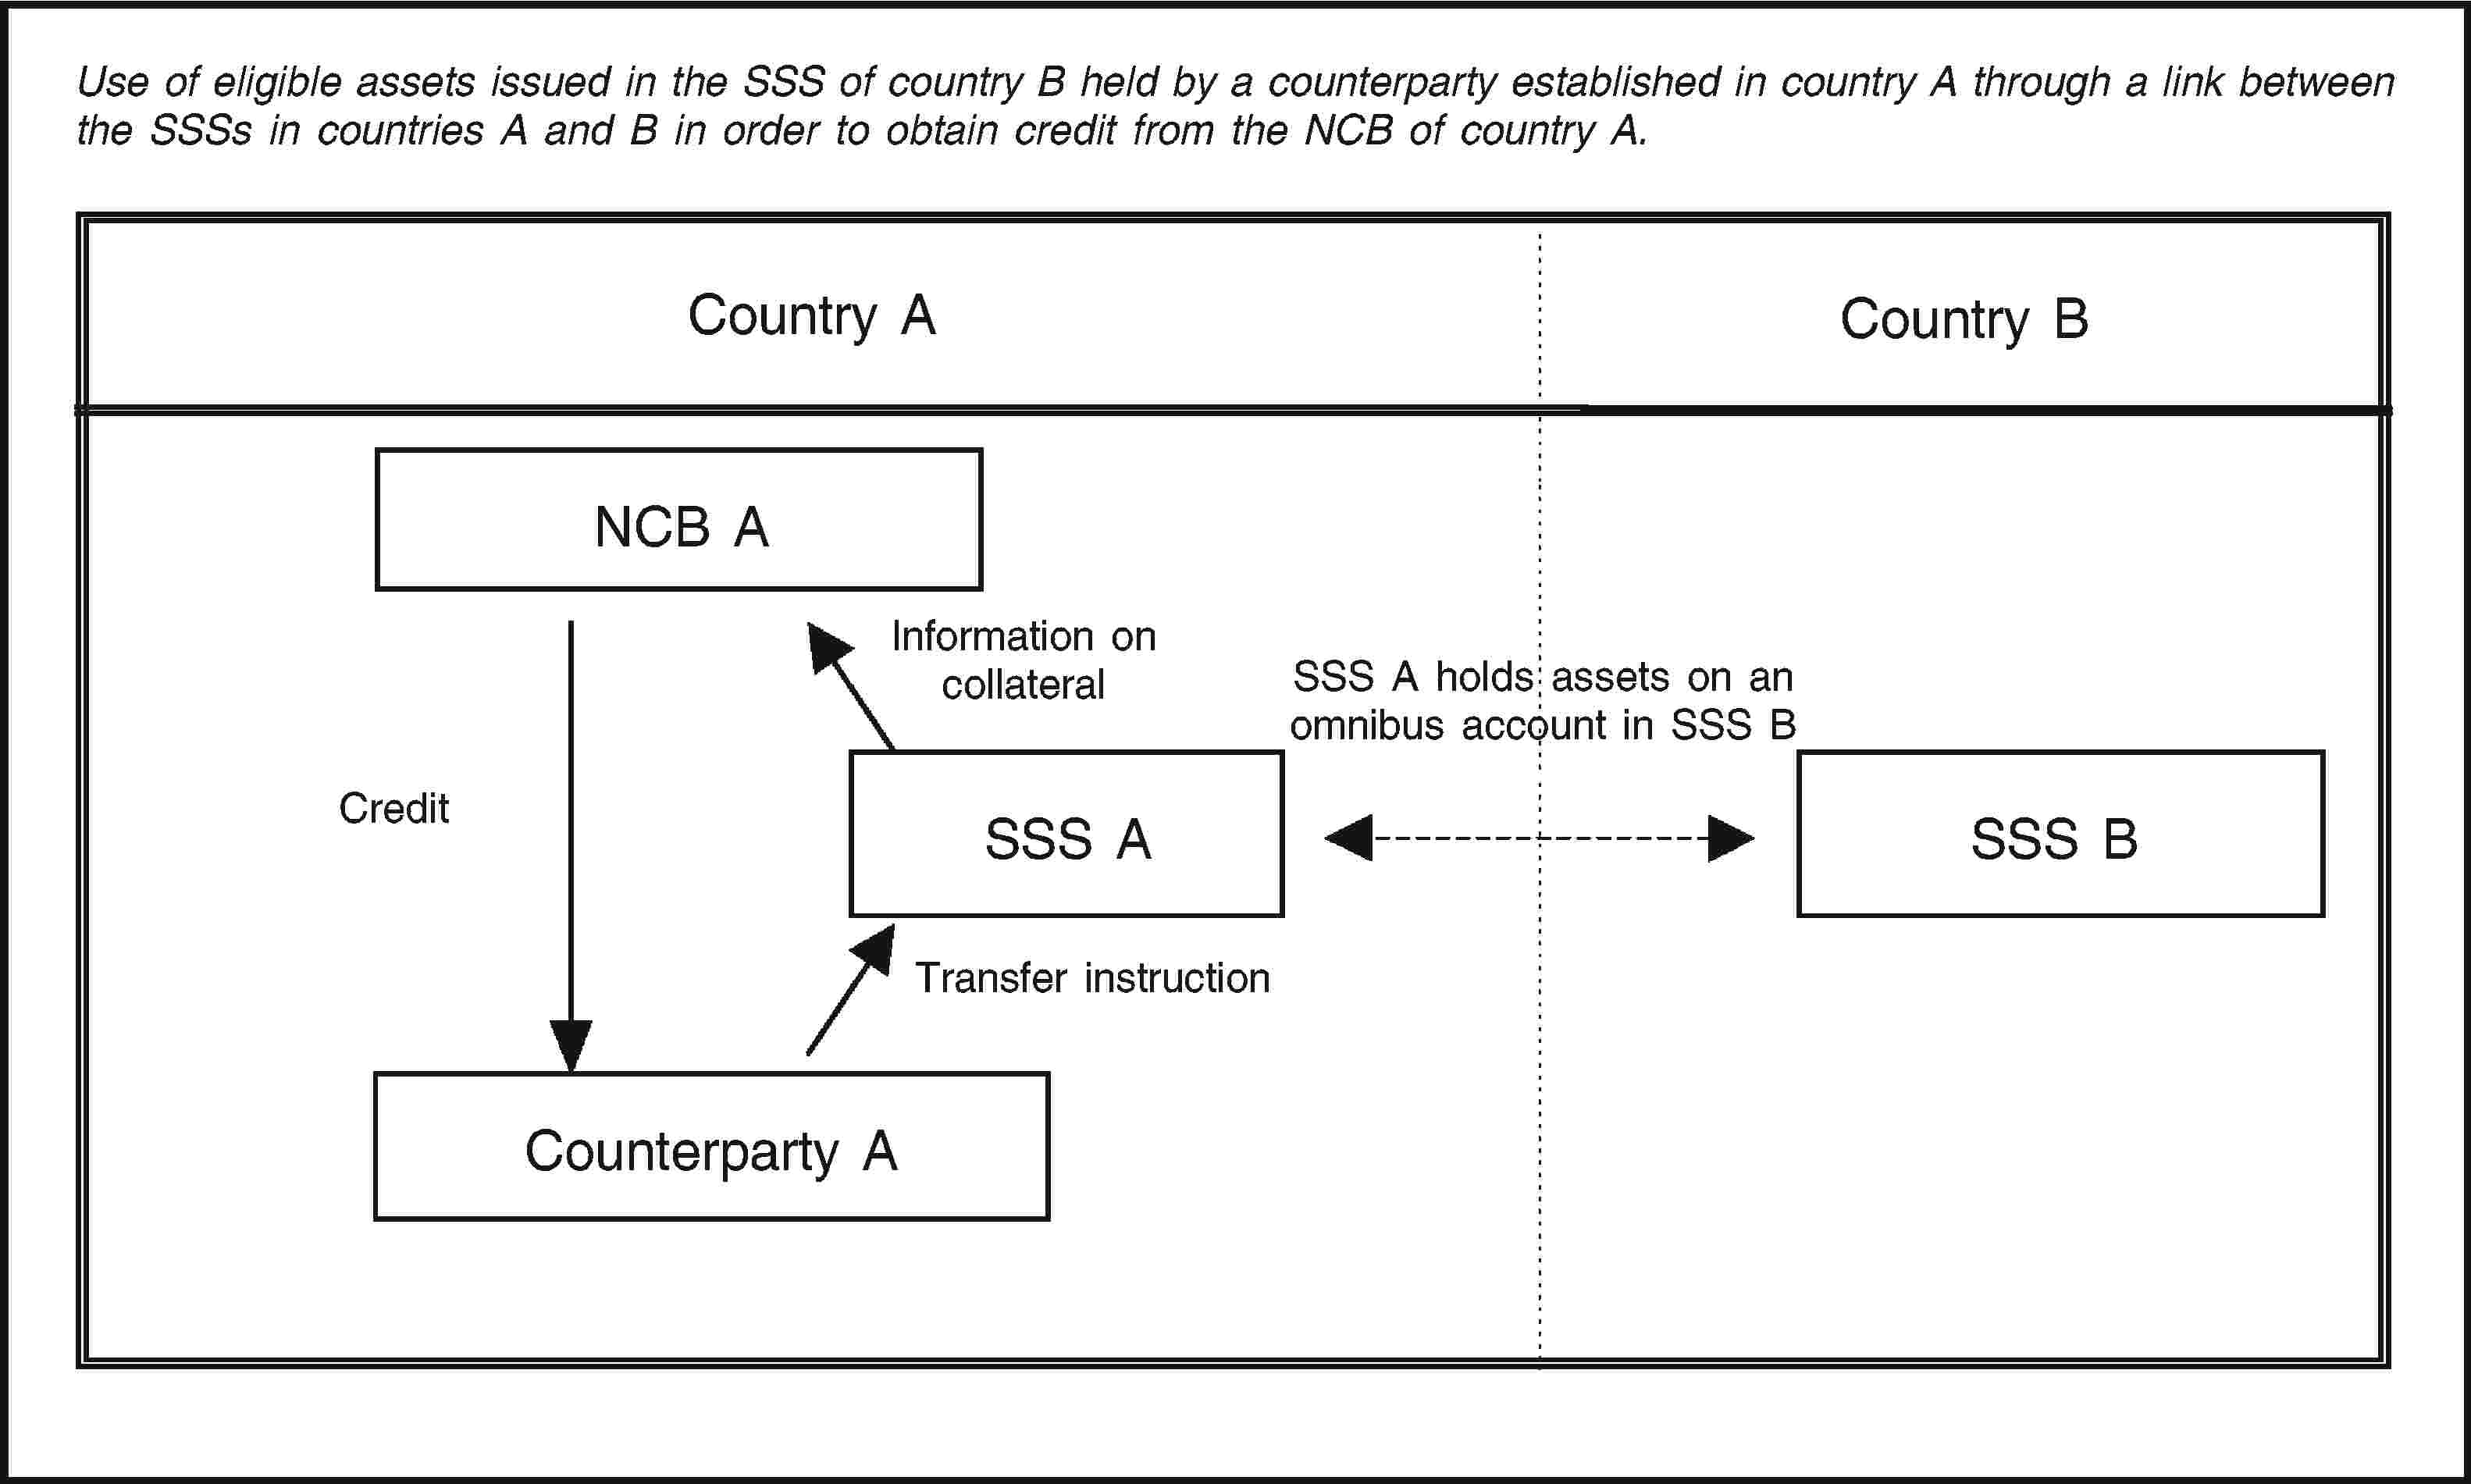 Eur lex 02011o0014 20140605 en eur lex use of eligible assets issued in the sss of country b held by a counterparty established nvjuhfo Choice Image